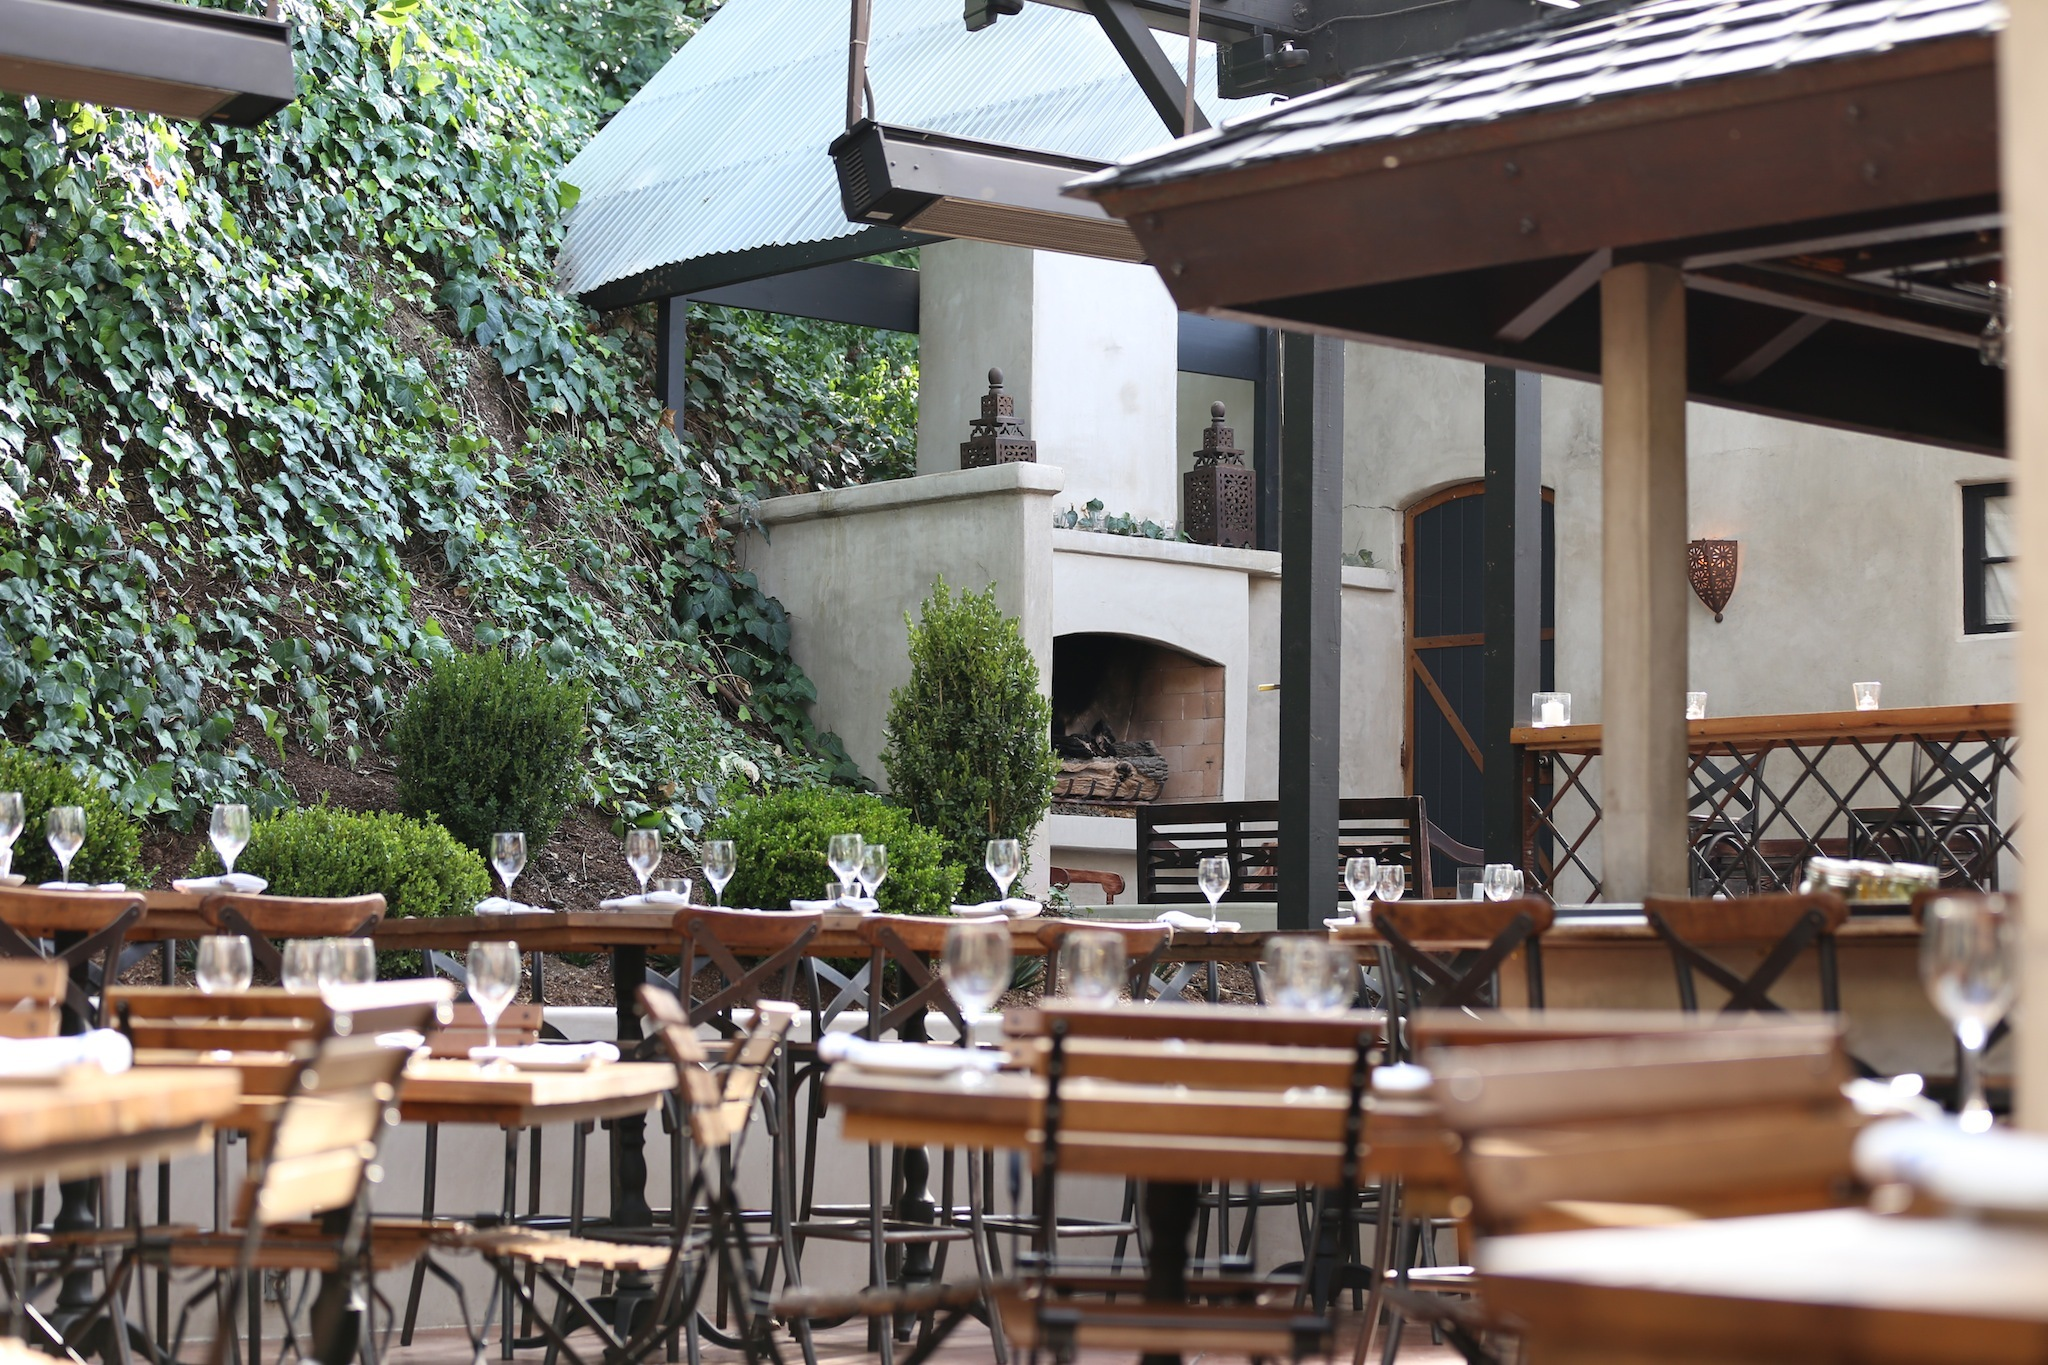 Best outdoor dining restaurants in Los Angeles